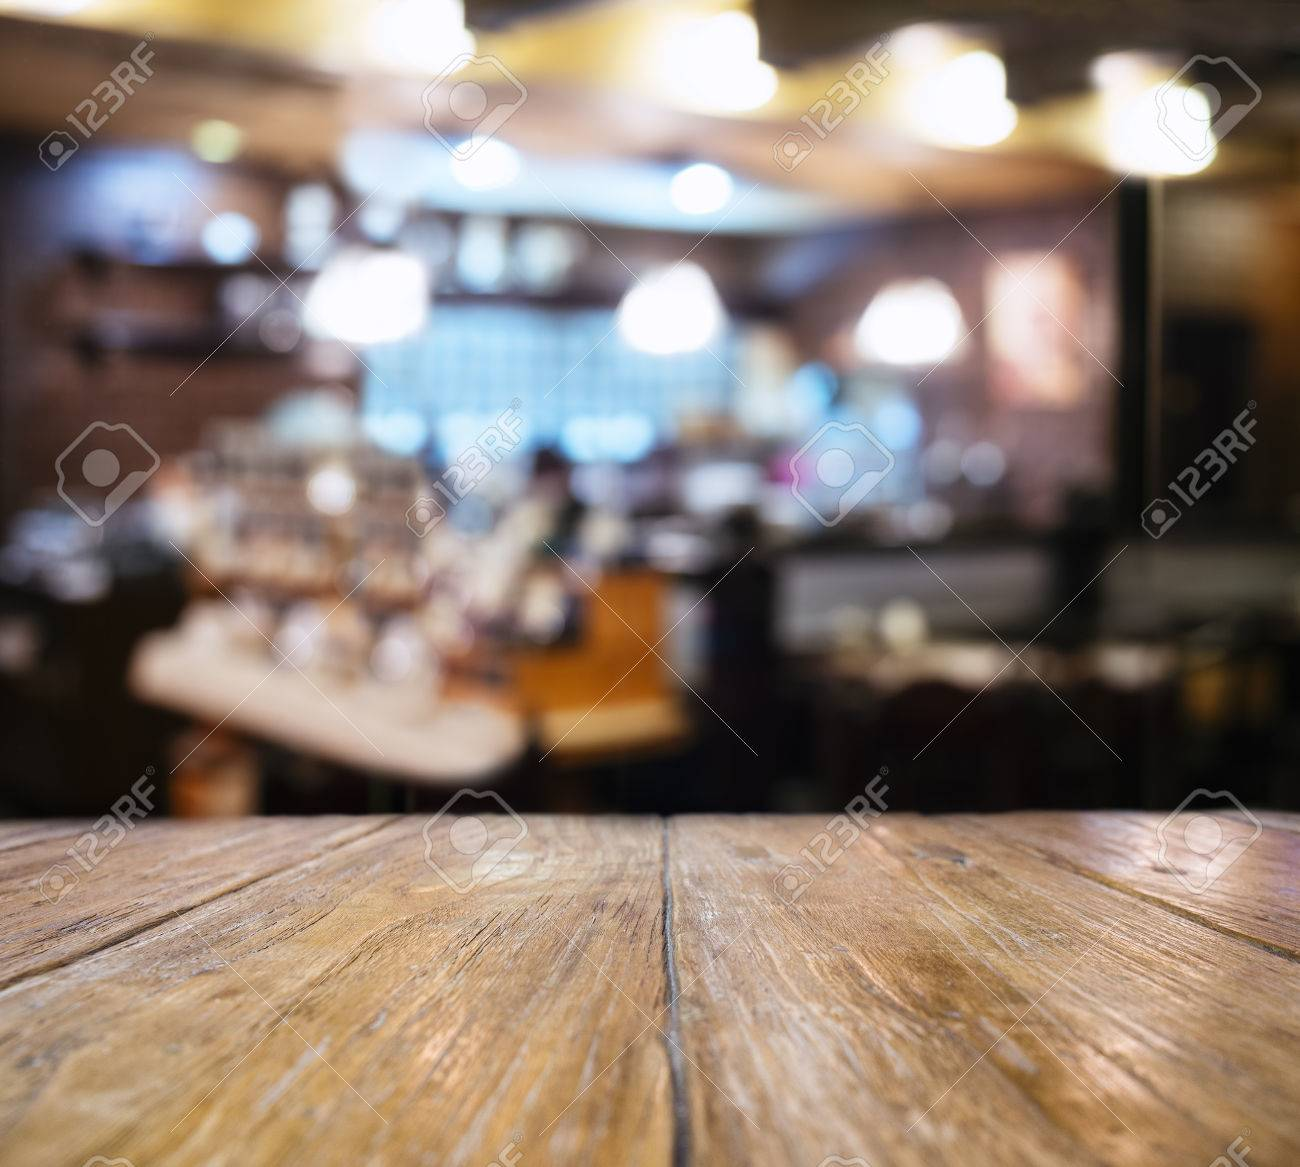 Restaurant Background With People table top counter blurred bar restaurant cafe people interior